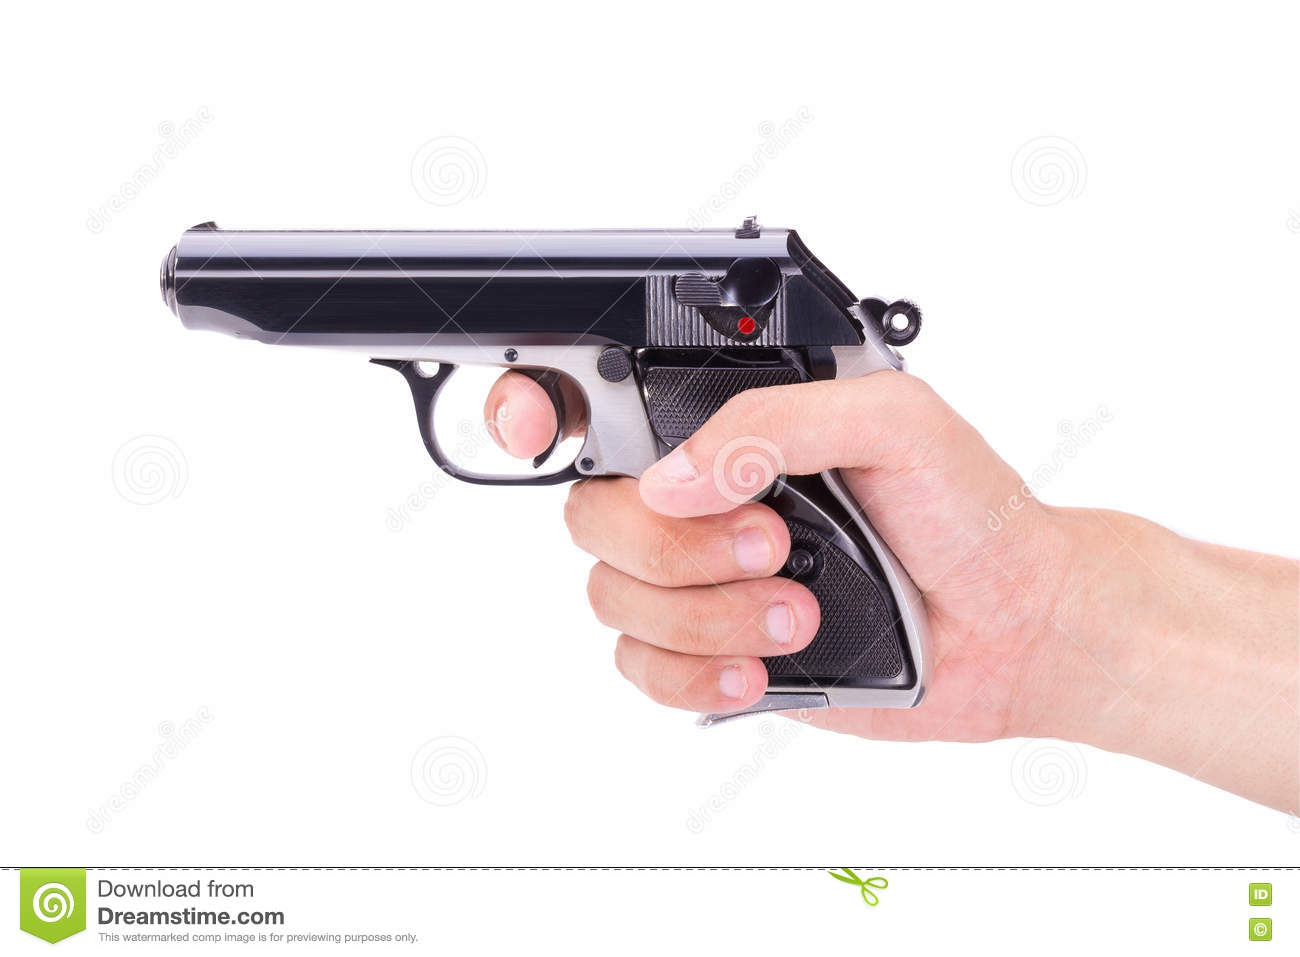 gun white background - photo #28